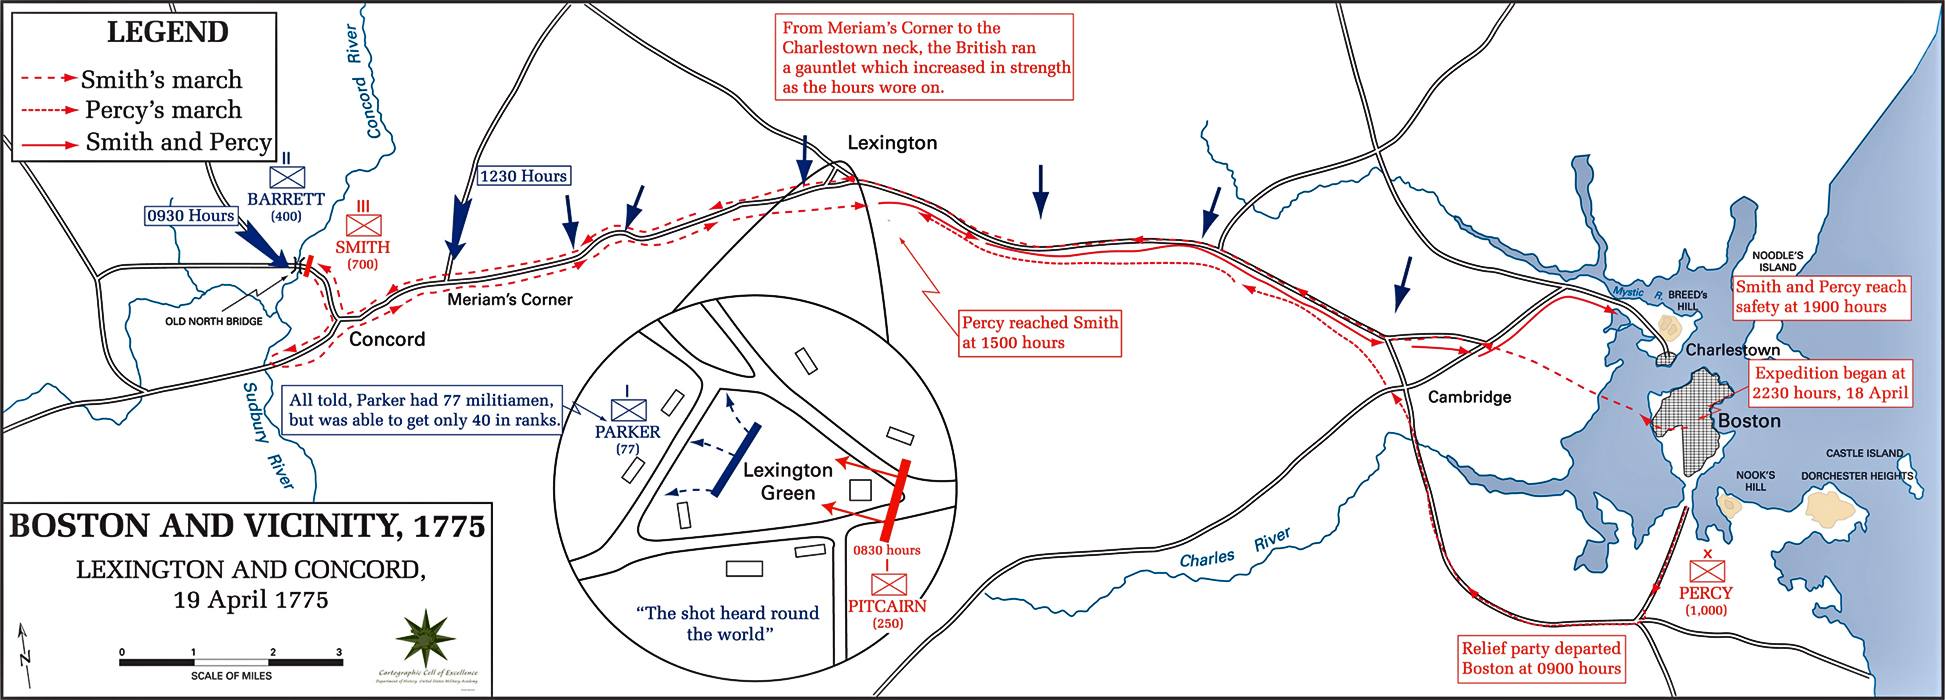 Map of the Battle of Lexington and Concord - April 19, 1775